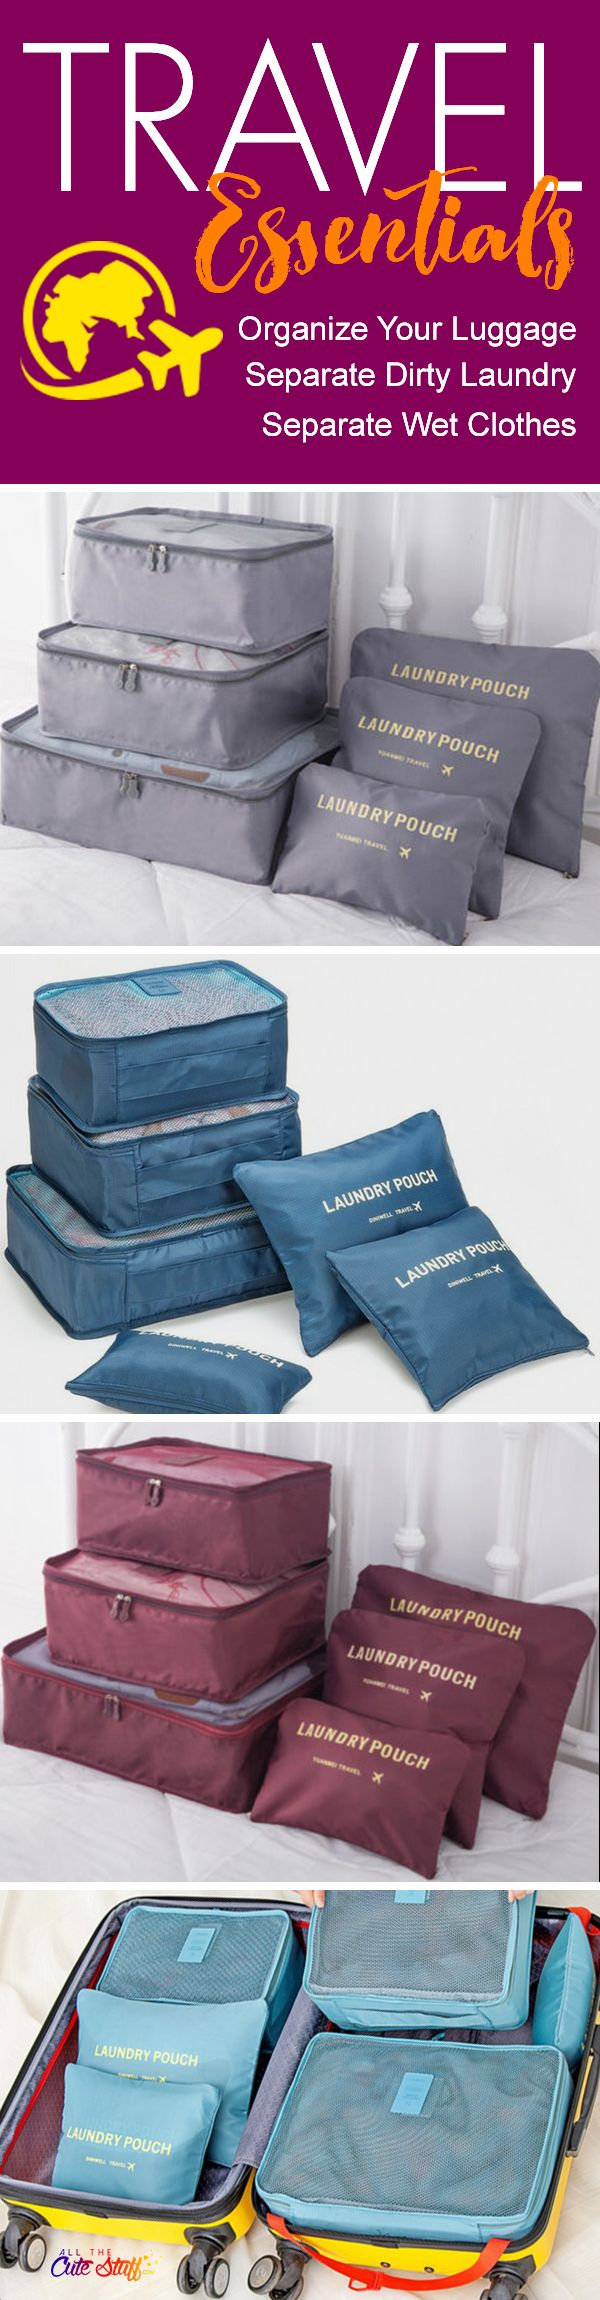 Waterproof Travel Organizing and Packing Bags/Pouches - https://www.allthecutestuff.com/travelcubes  These super cute luggage organizer bags are a travel essential.  Create more space in your suitcases, separate dirty laundry and keep wet stuff separate with these high-quality, waterproof travel bags.